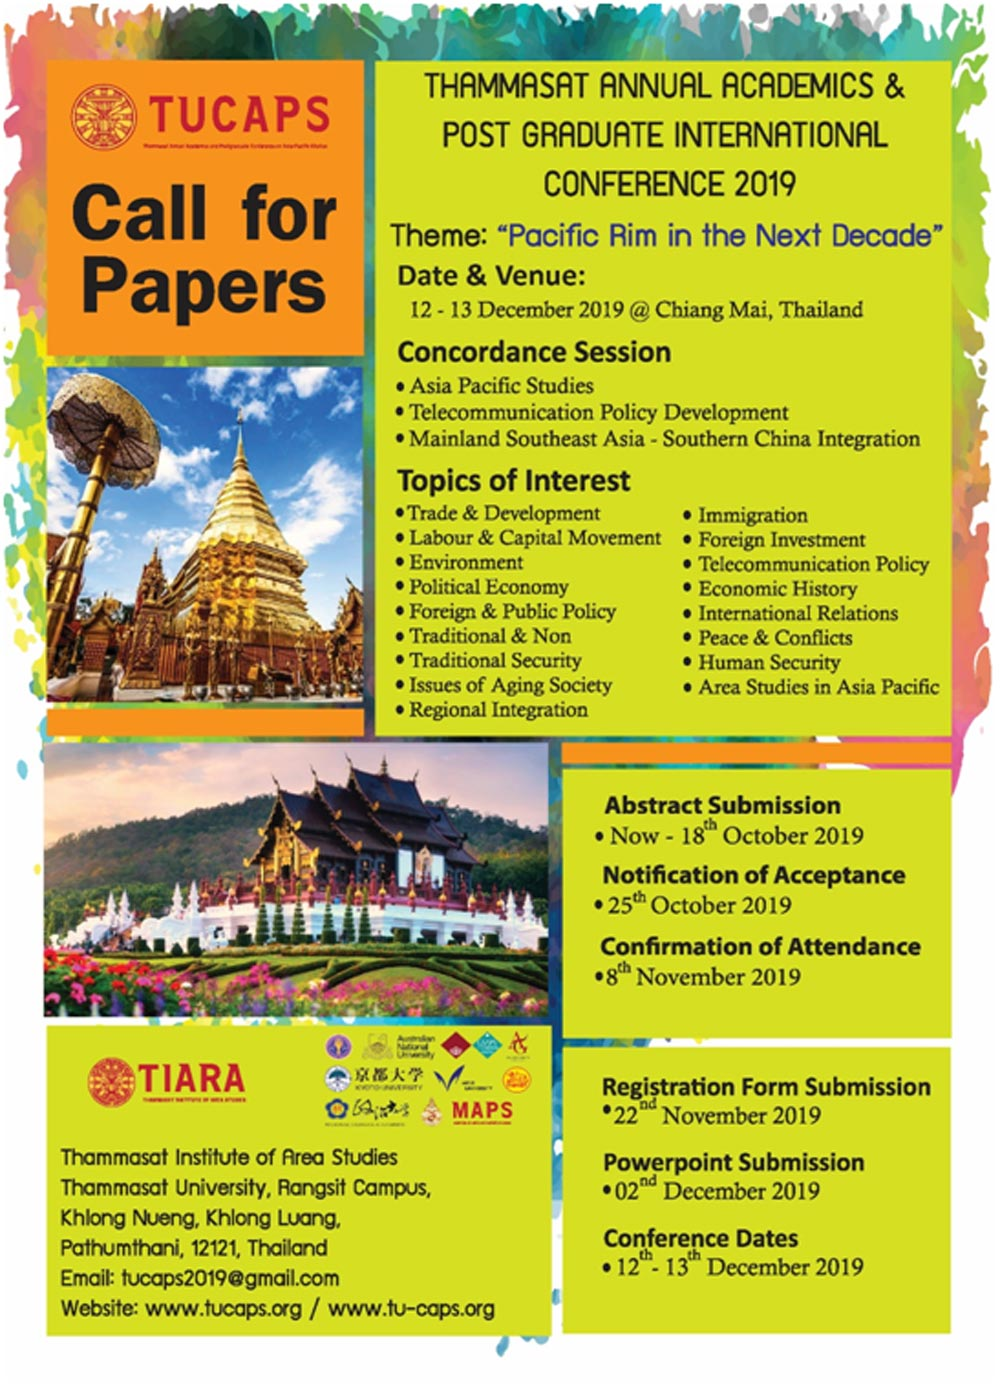 tu-caps-call-for-papers-23-09-2019-01